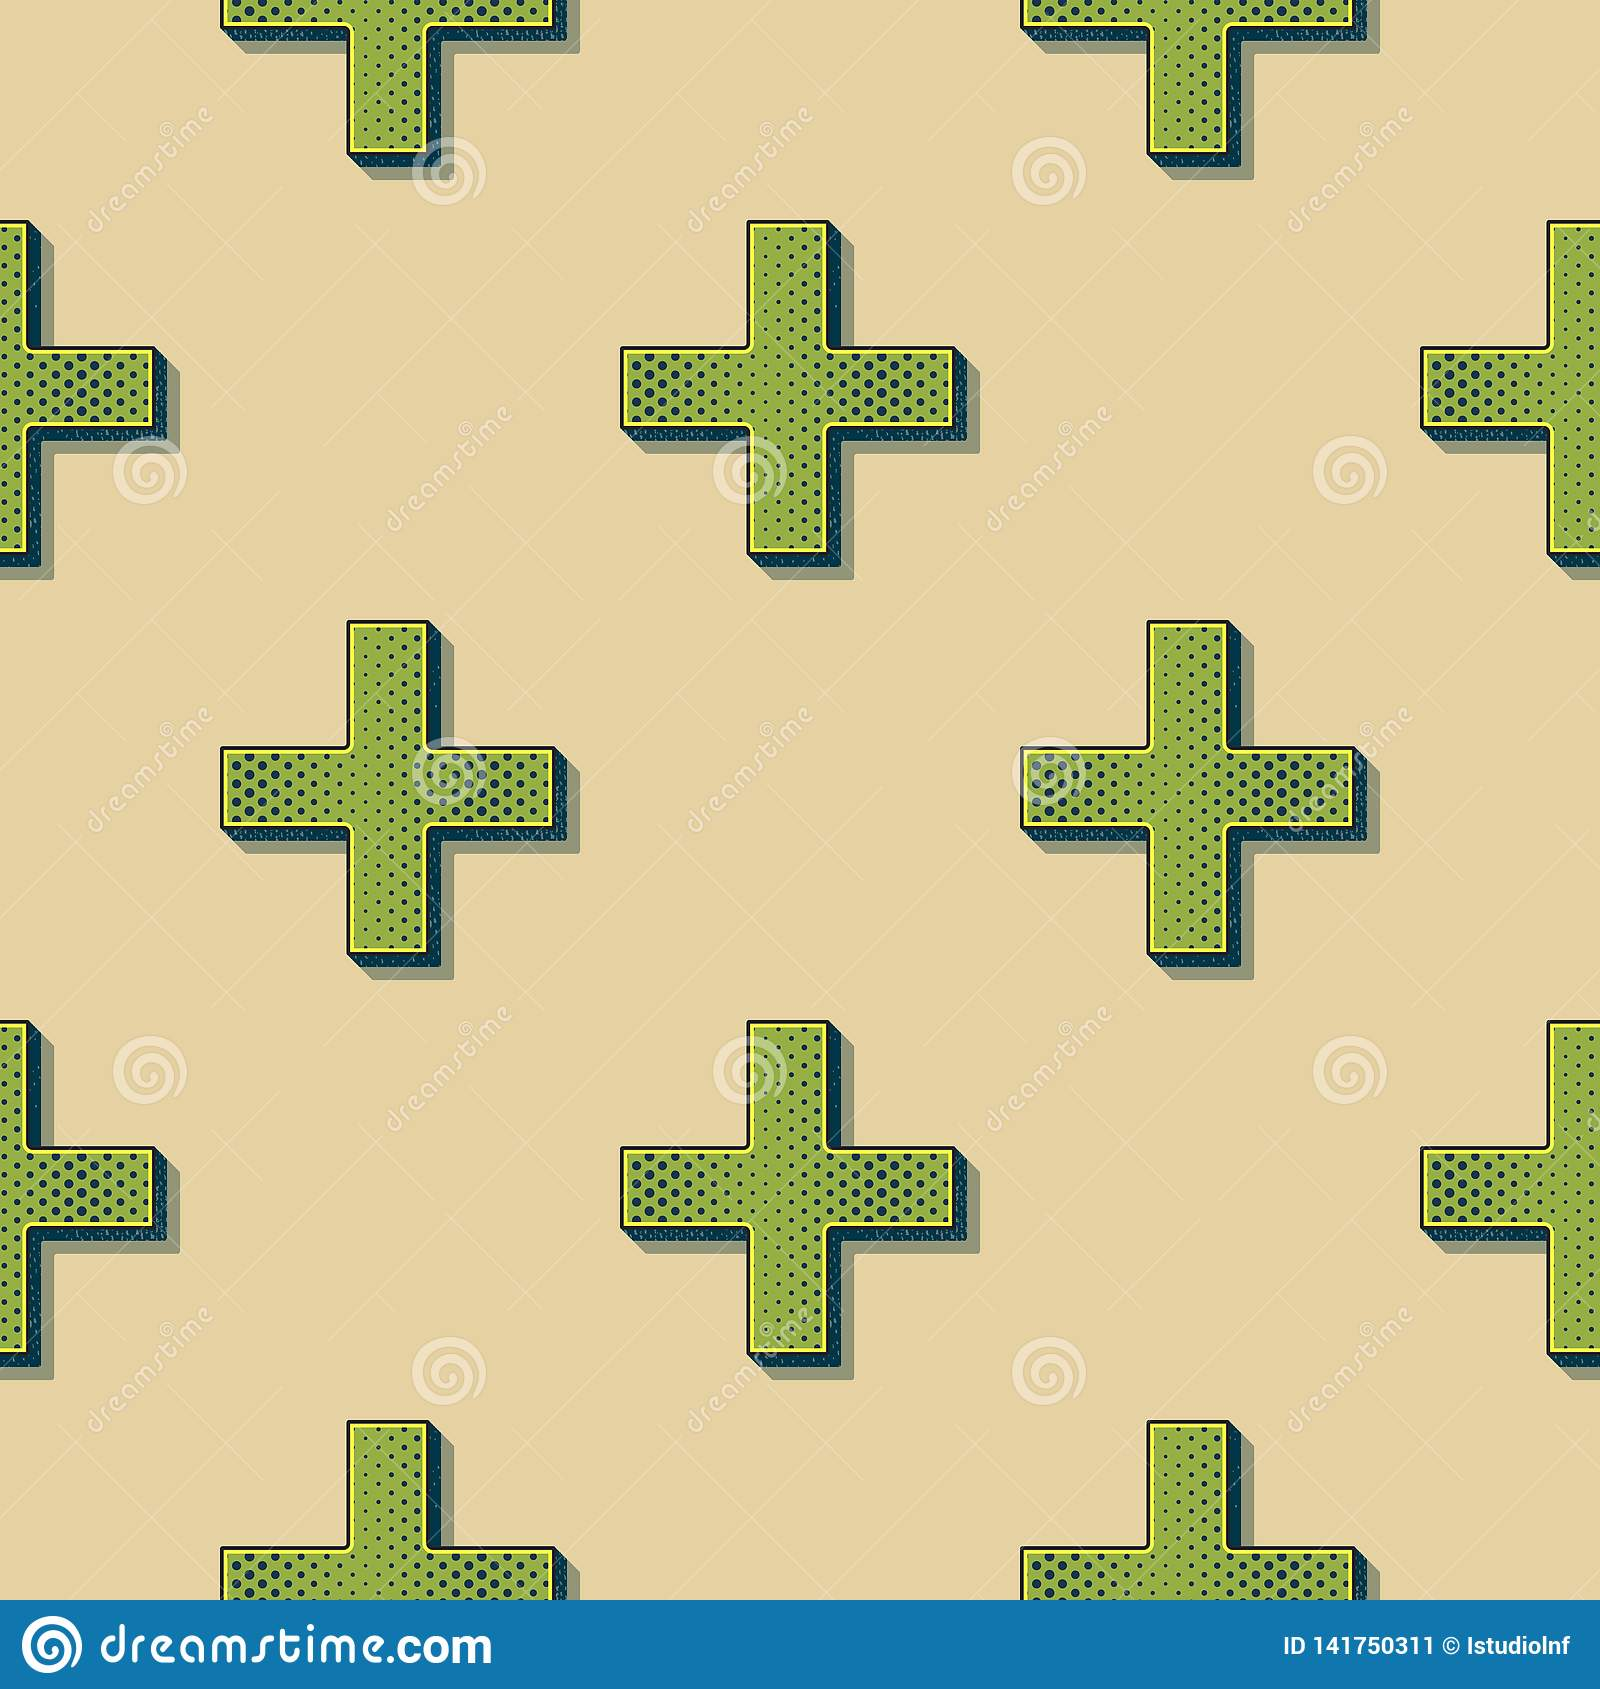 Retro Crosses Pattern, Abstract Geometric Background In 80s